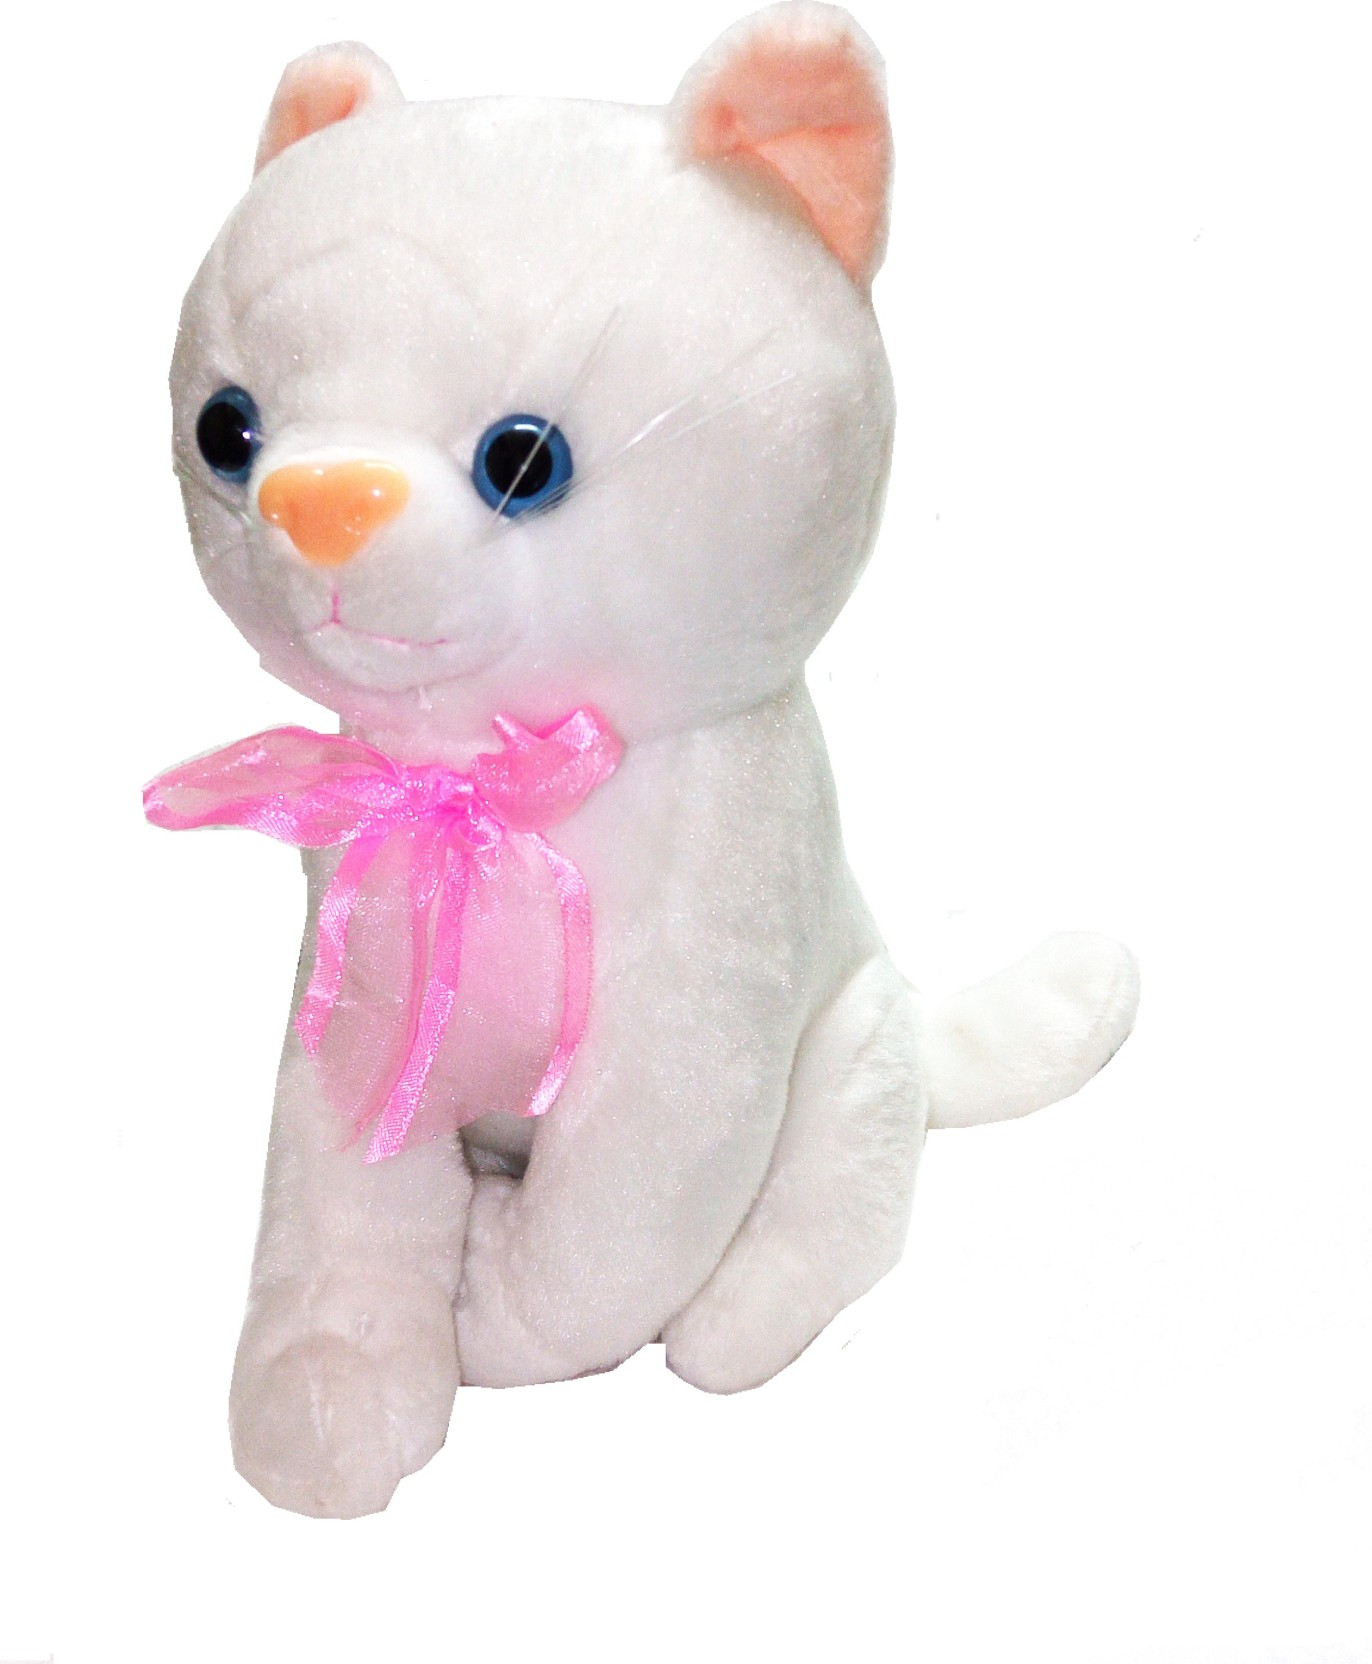 452c0271d508 TALKING GANESHA Cute Baby Kitten With Meow Sound Stuffed Soft Toy for kids  - White - 8 inch (White)